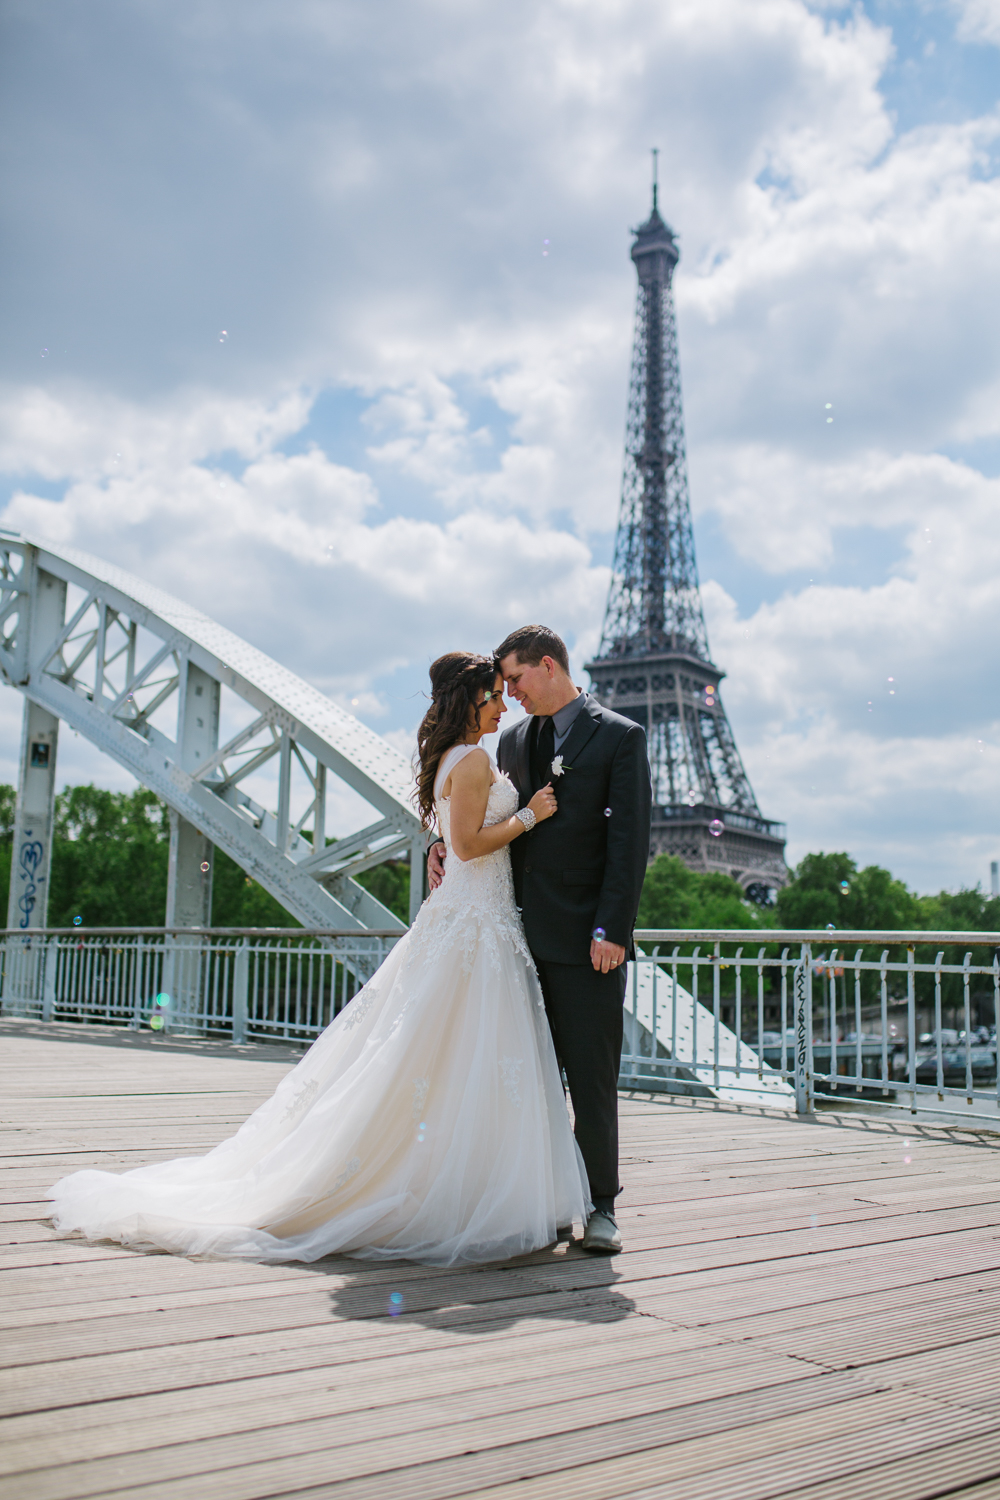 Chico-Wedding-Photography-Ranalla-Photo-Films-Wedding-Video-Wedding-Photographer-Destination-wedding-photographer-venice-wedding-paris-wedding-paris-night-eiffel-tower-2.jpg